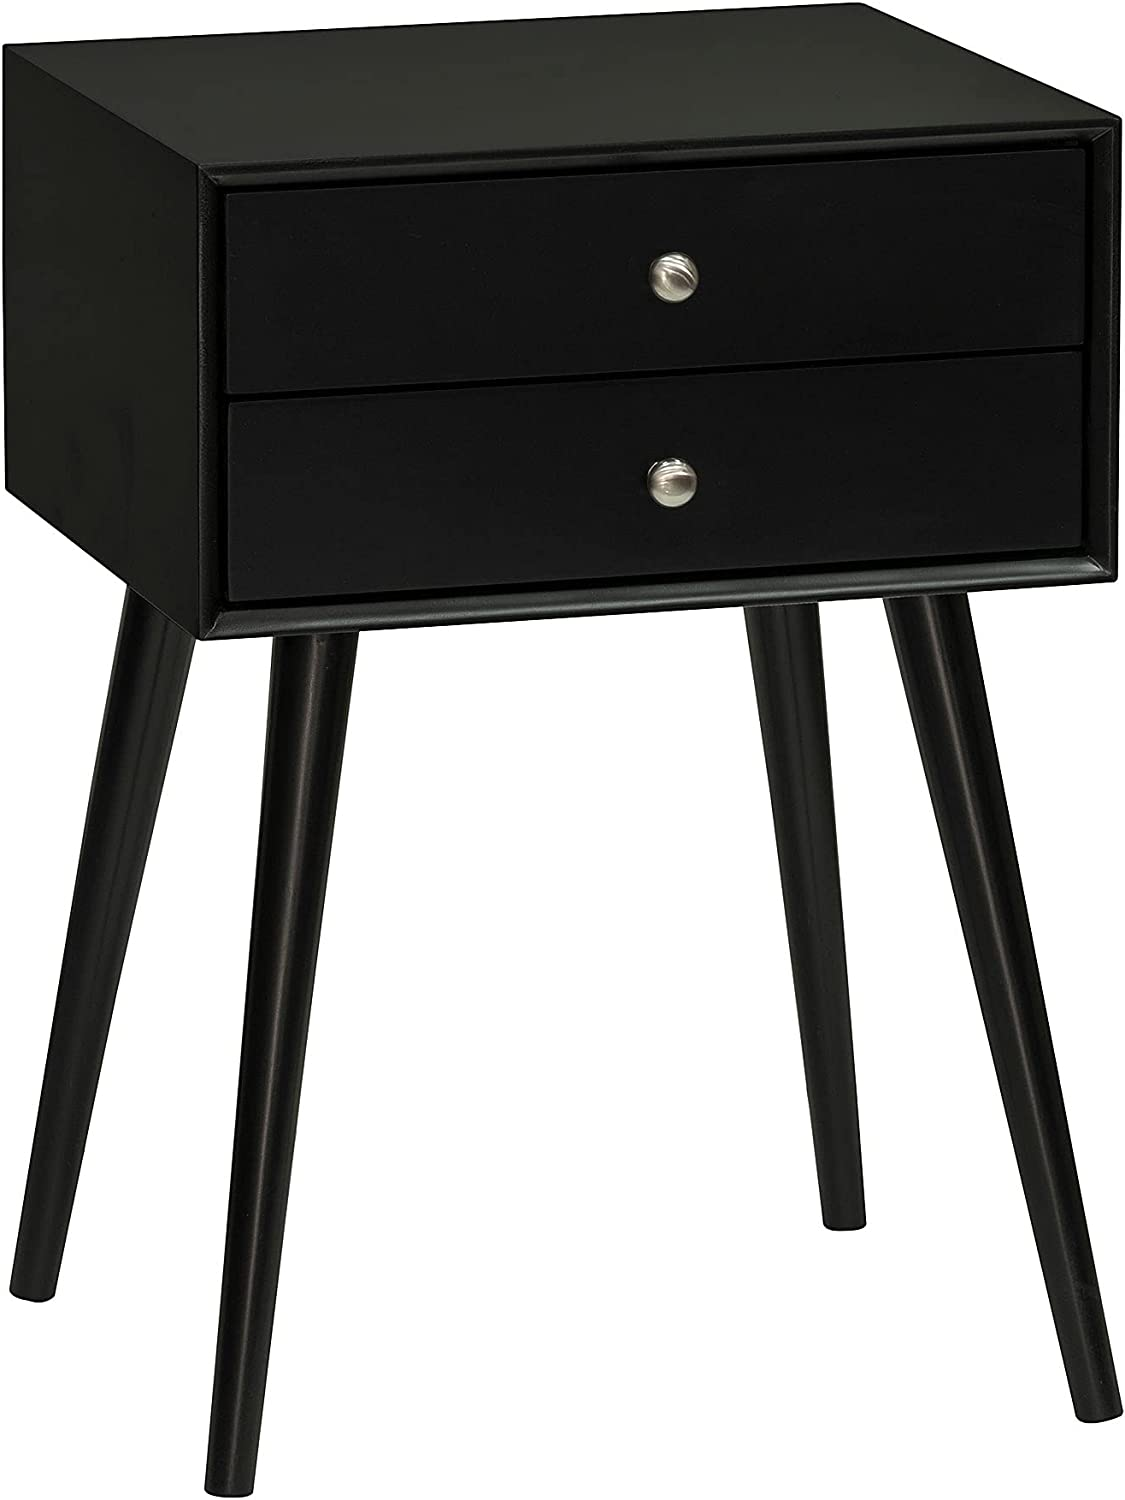 HOMCOM Modern Nightstand Mail order with 2 Pull Out Drawers Side Popular brand in the world Table End